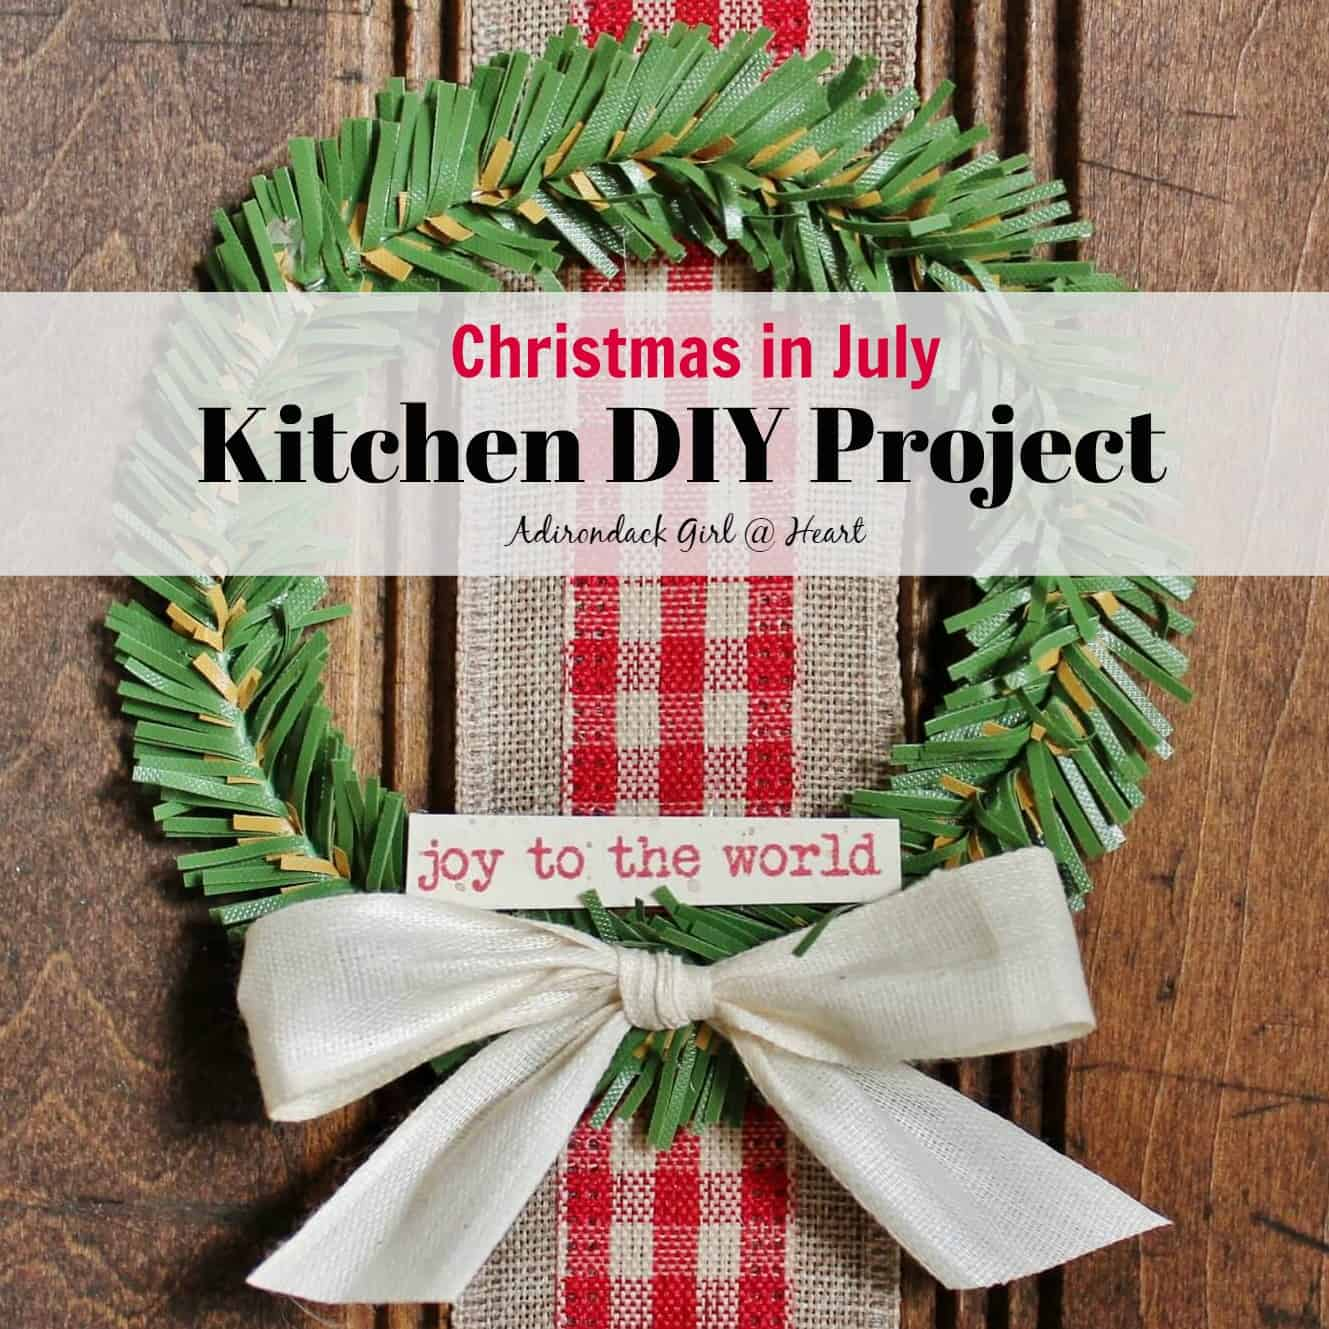 Diy Project Christmas In July Kitchen Diy Project 20 Off Code Adirondack